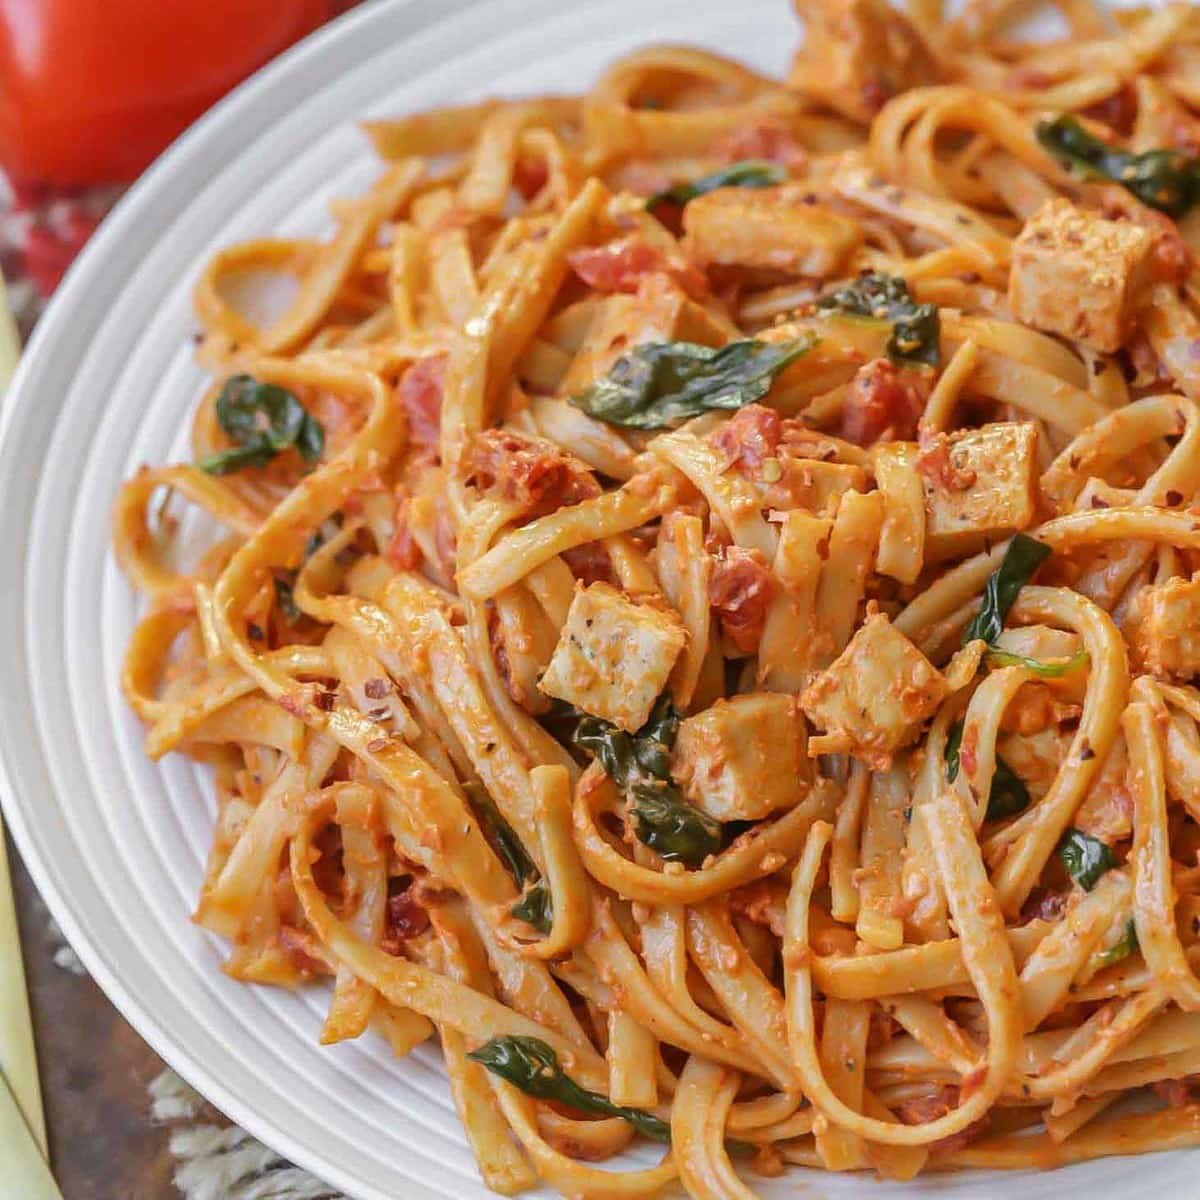 Sun Dried Tomato Pasta with chicken and spinach on a plate